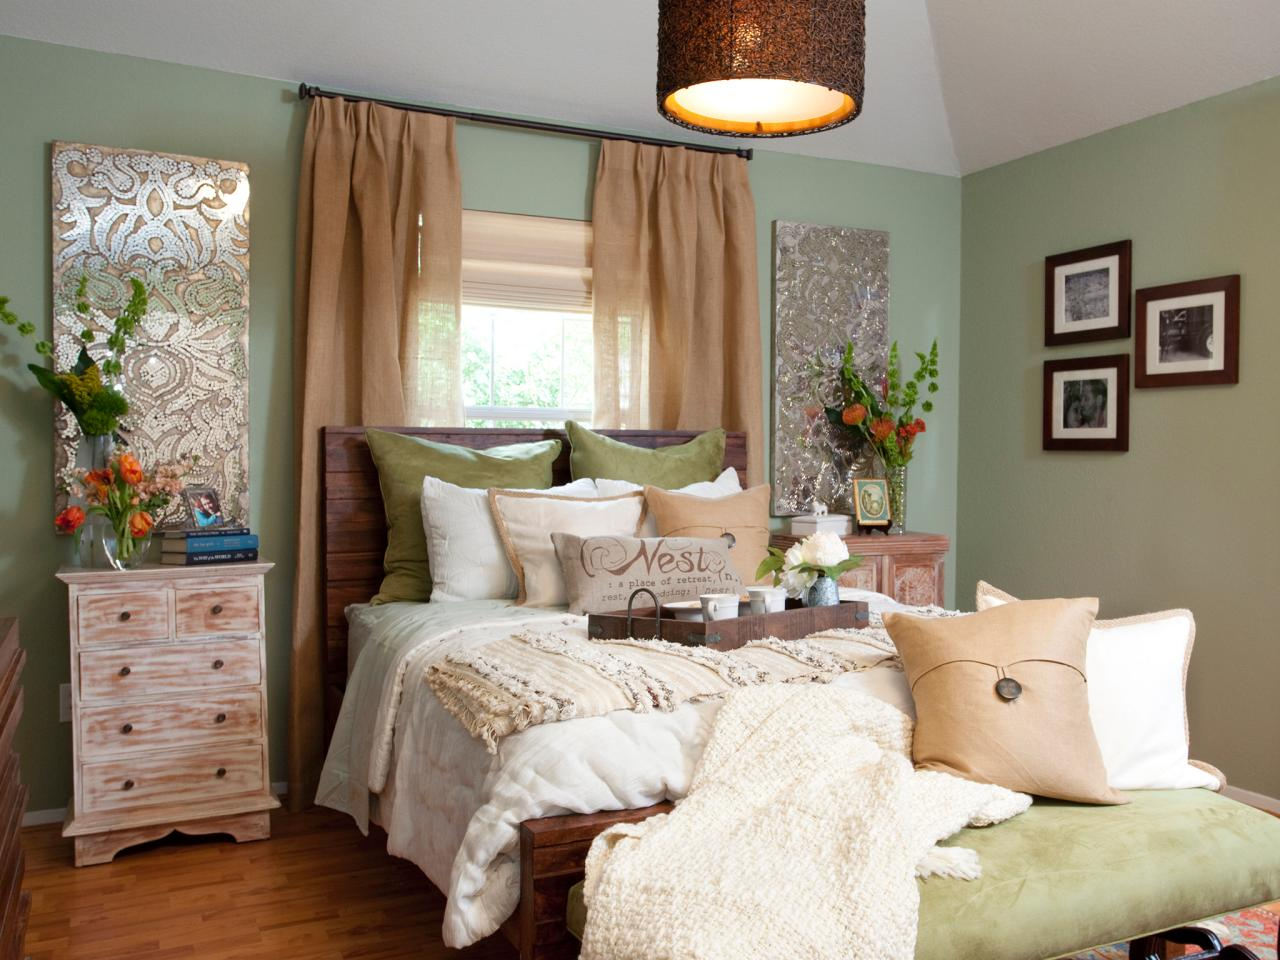 Bedroom Colors 2014 Fair Small Bedroom Color Schemes Pictures Options & Ideas  Hgtv Inspiration Design